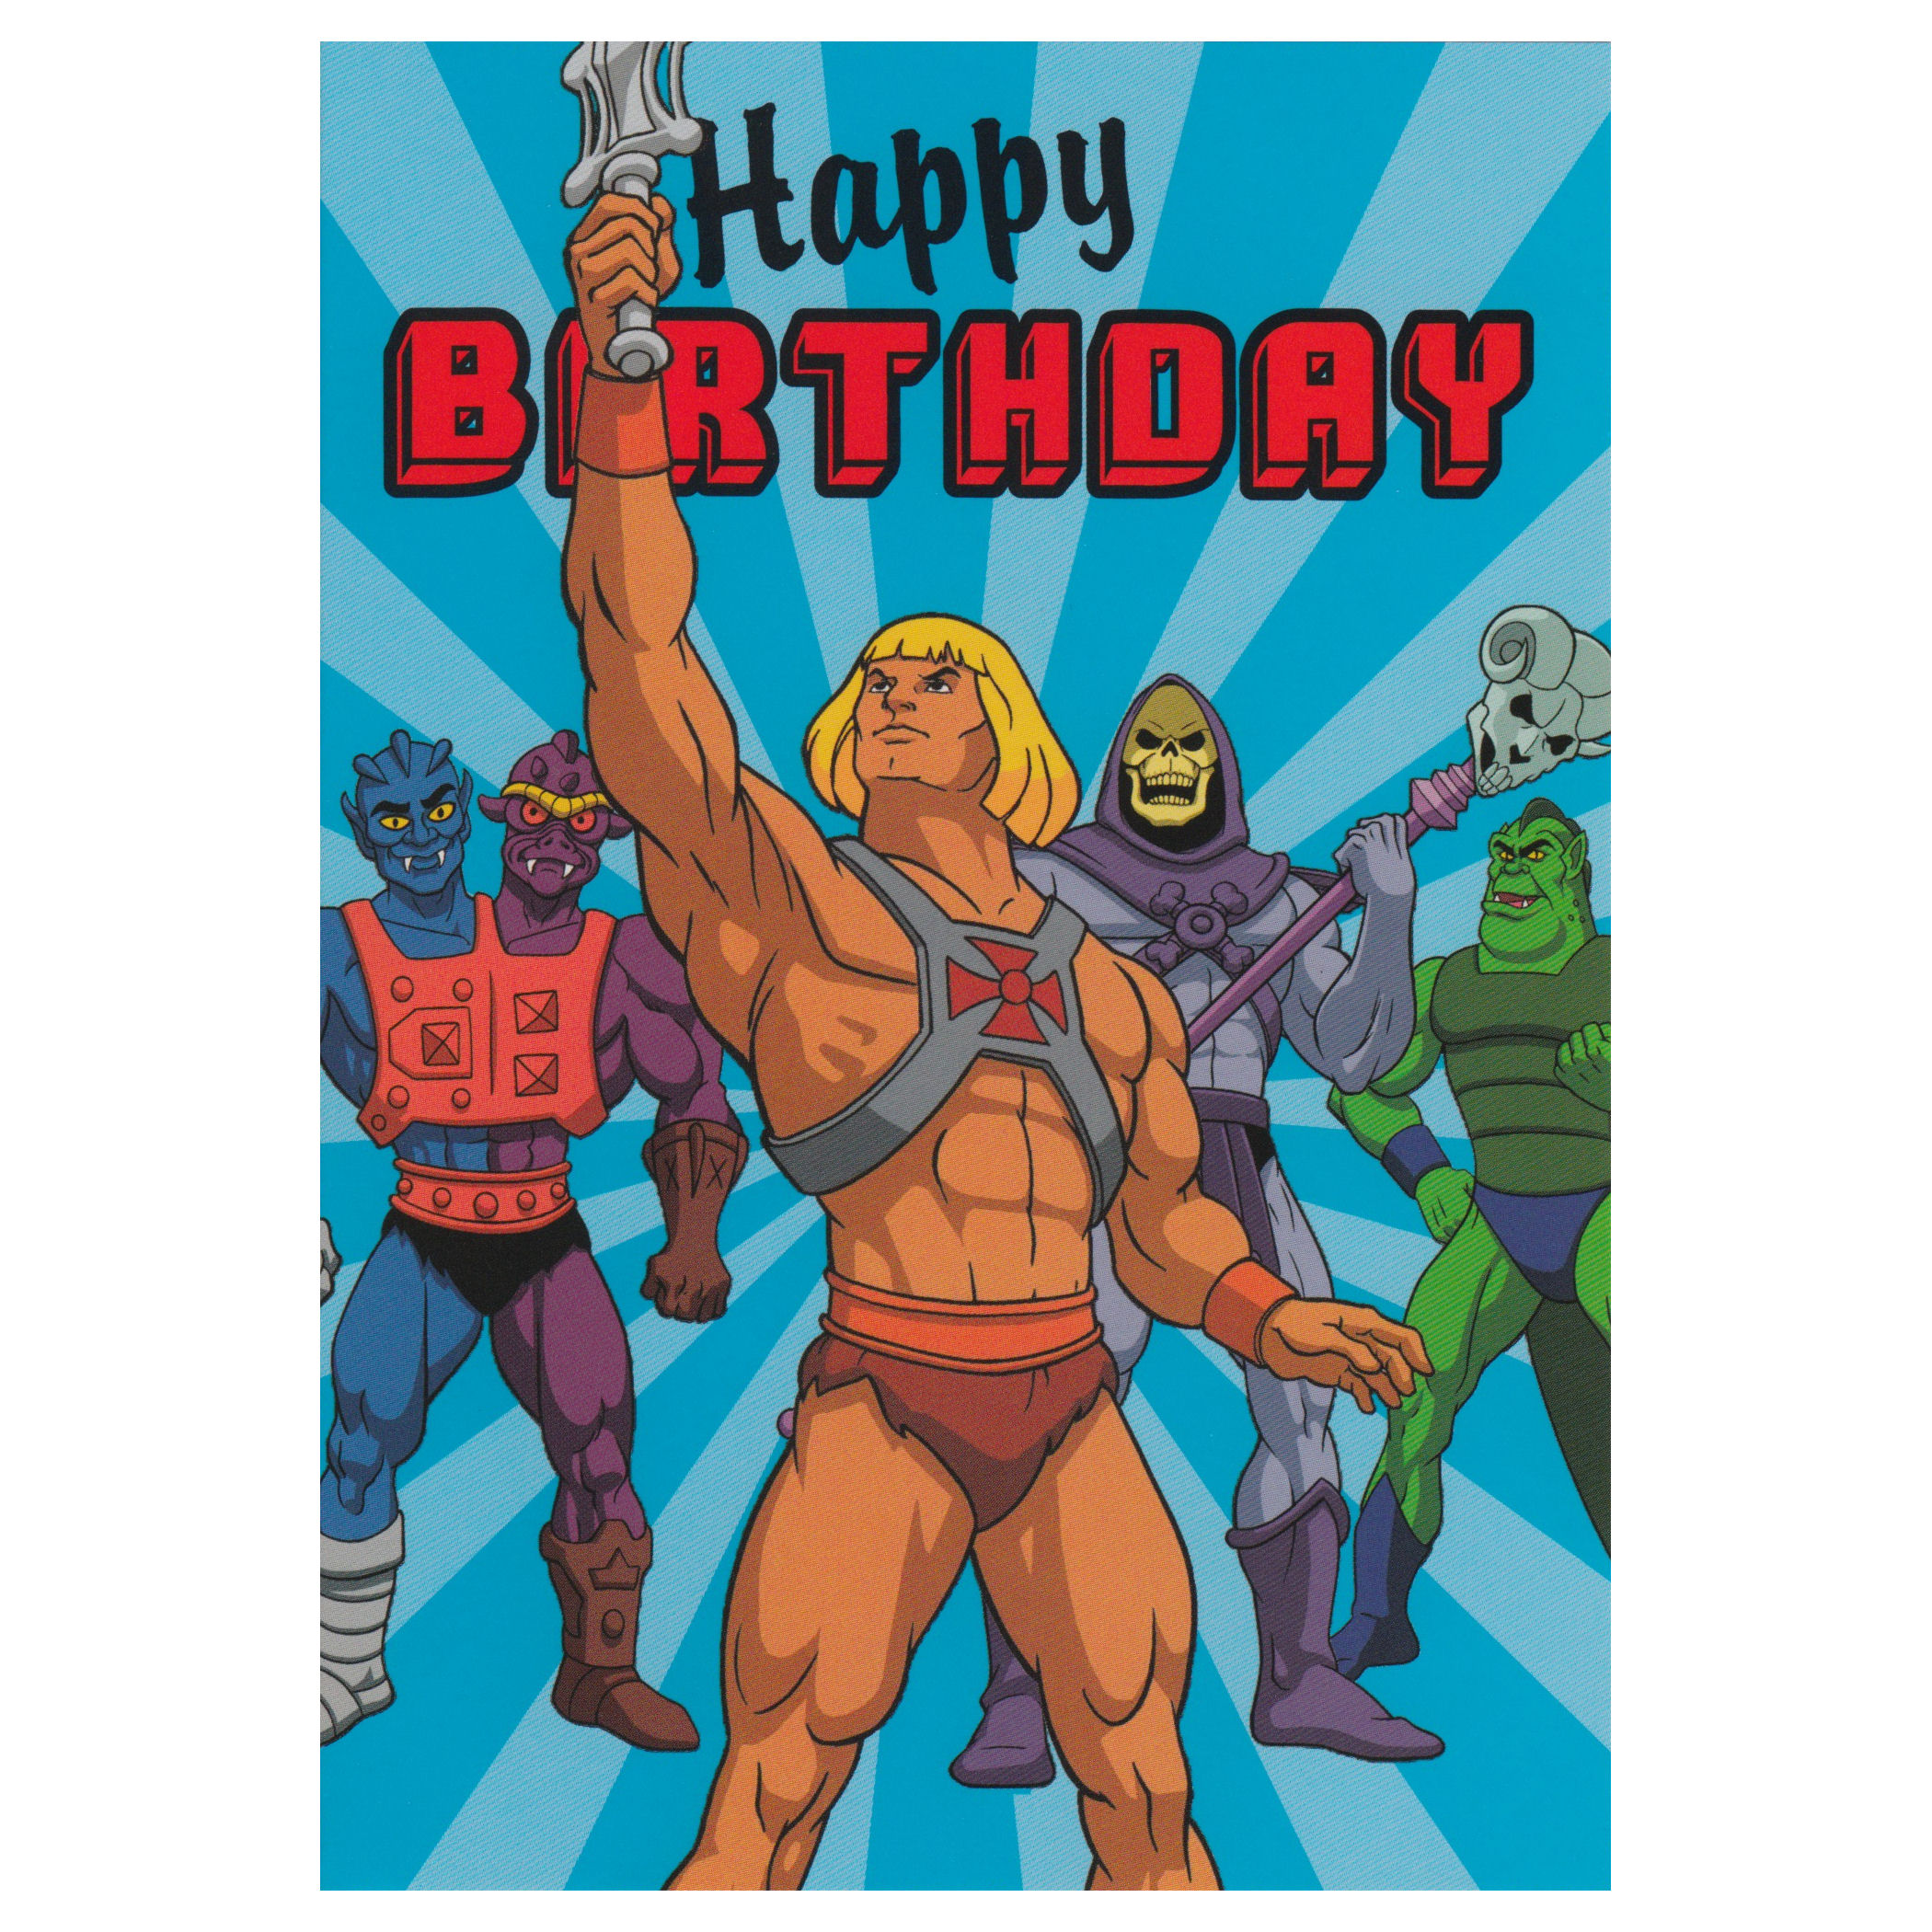 HE-MAN HAPPY BIRTHDAY GREETING CARD RETRO BLANK SKELETOR